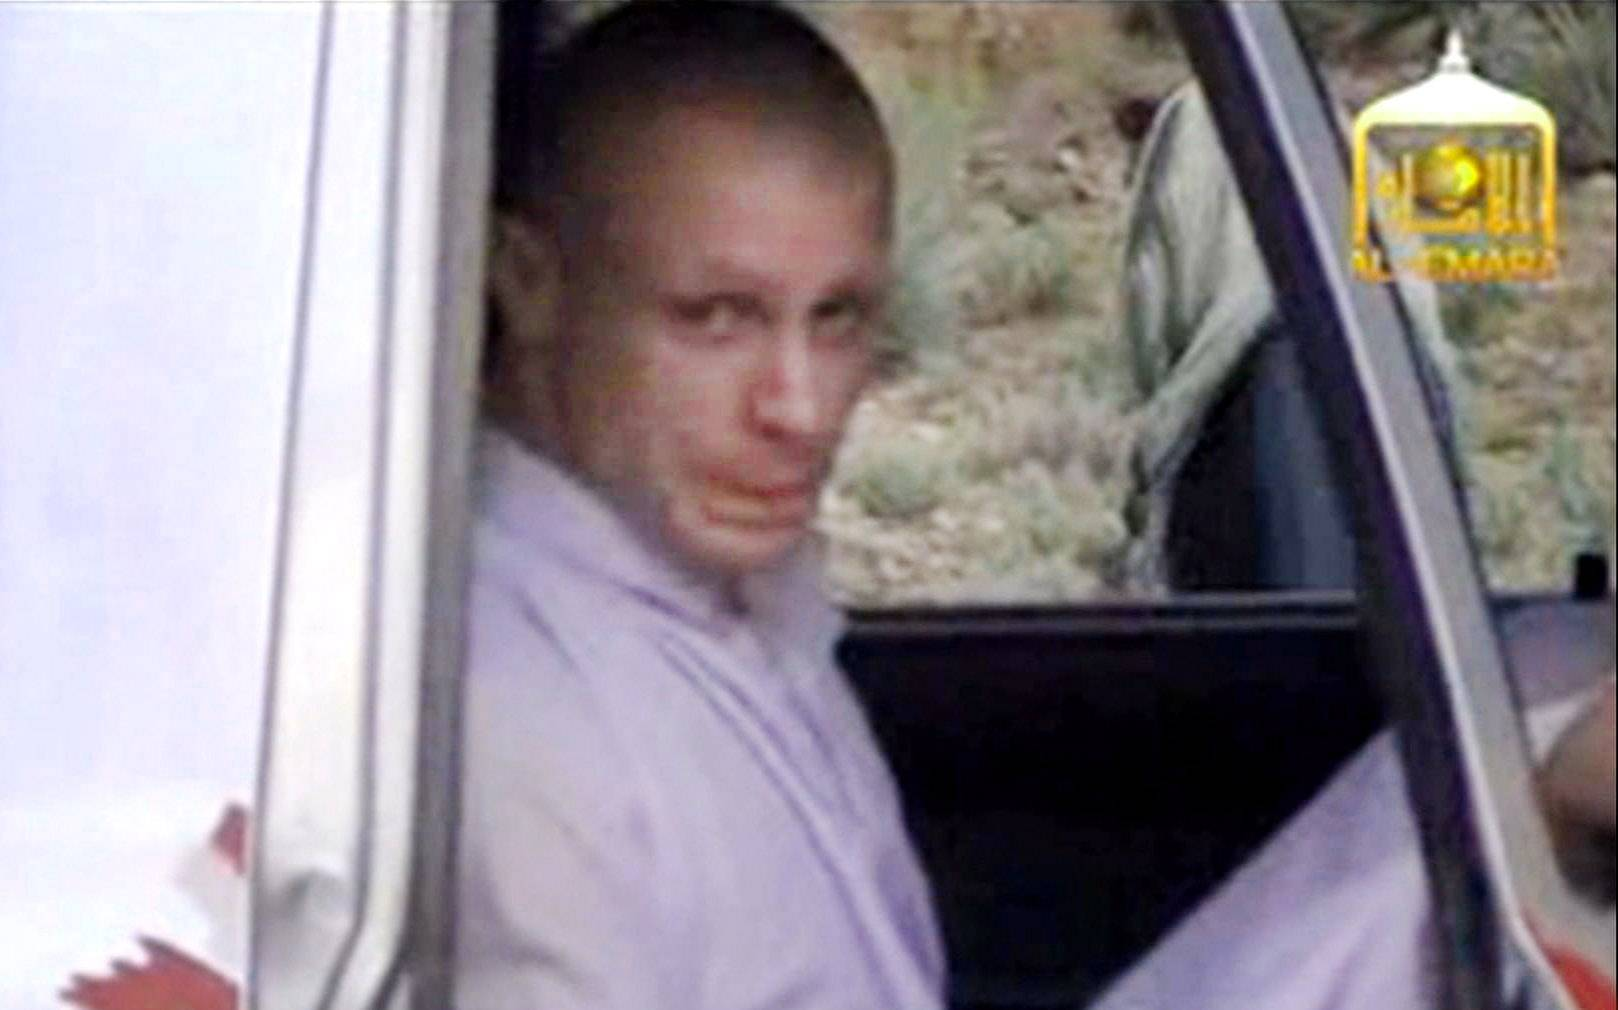 In this image taken from video, Sgt. Bowe Bergdahl sits in a vehicle guarded by the Taliban in eastern Afghanistan during his release. More than a dozen Taliban fighters with machine guns were seen around the truck and nearby.